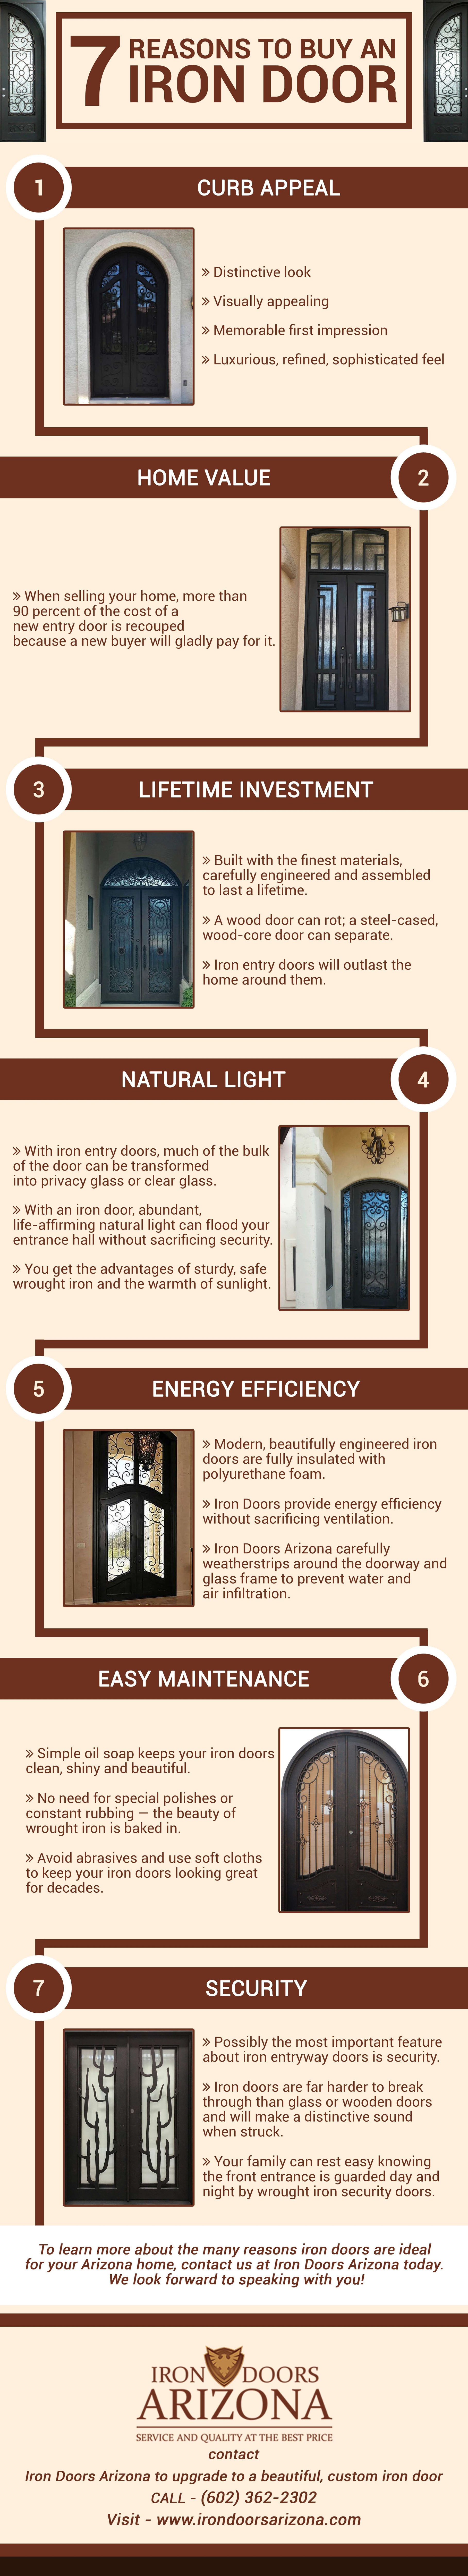 iron doors infographic